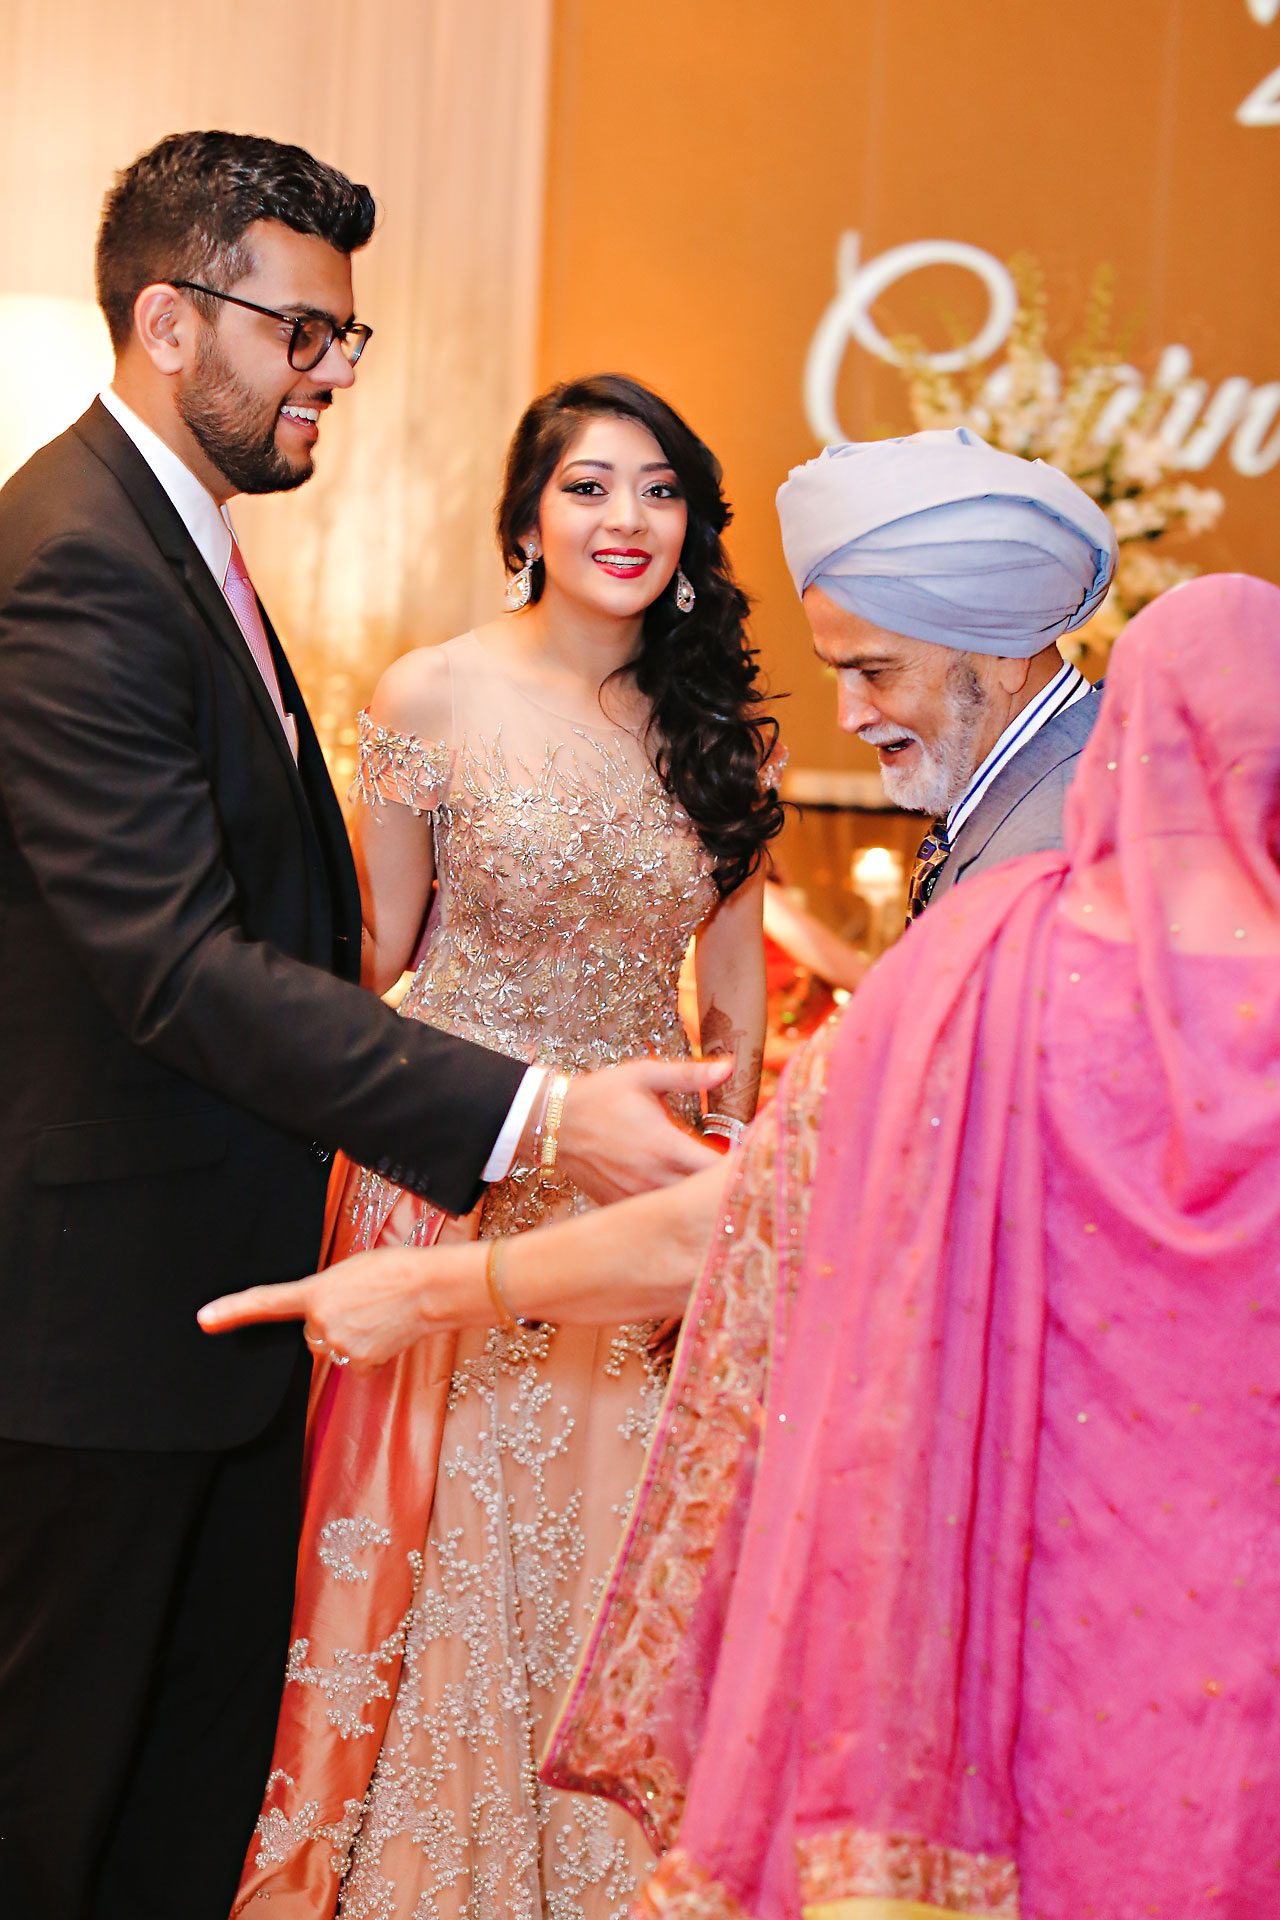 Jasleen Caarn JW Marriott Wedding 155